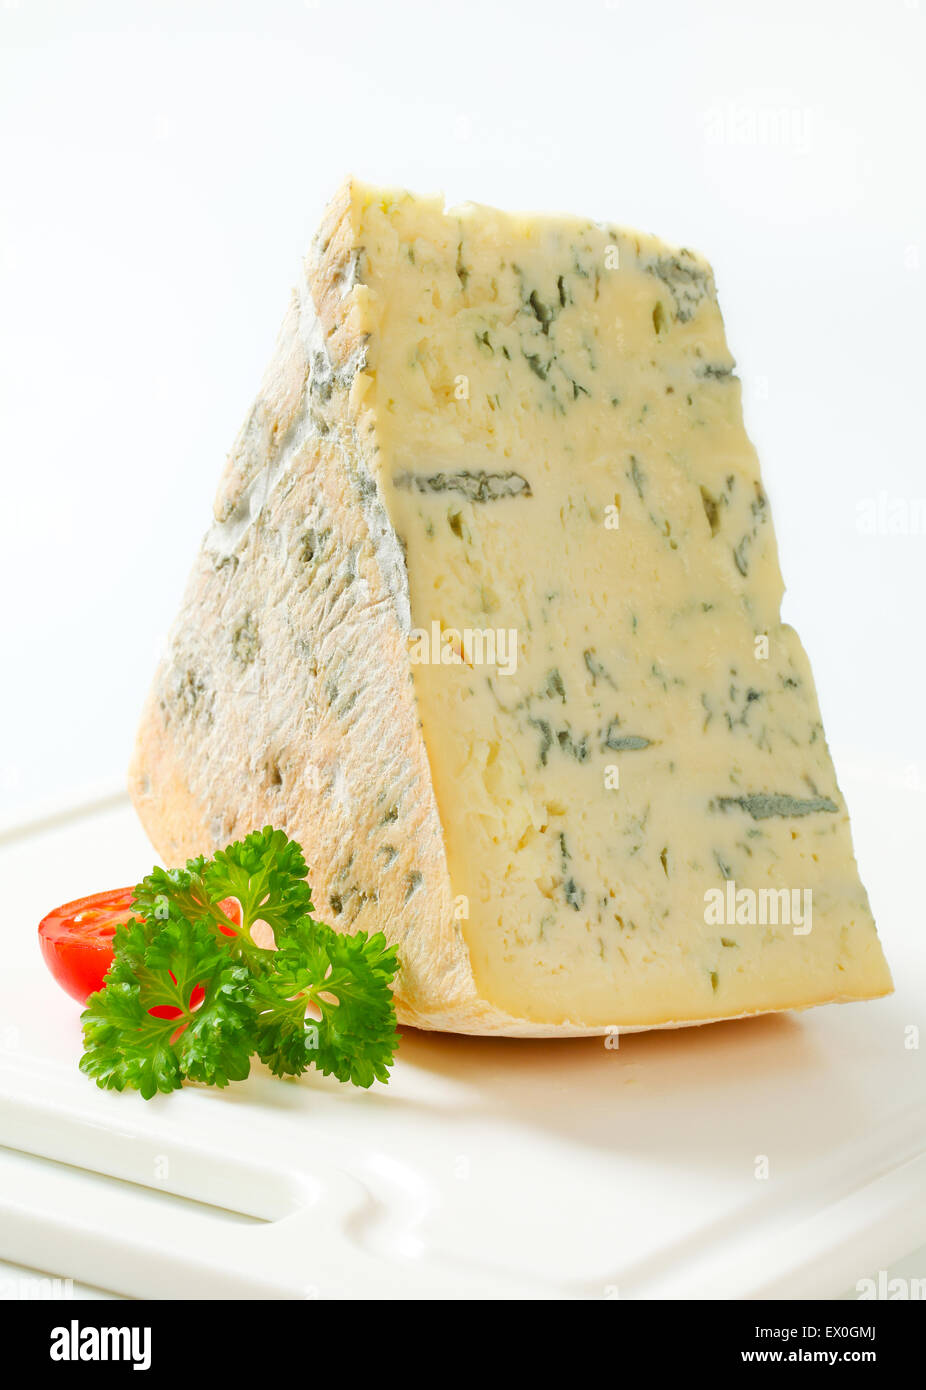 Large wedge of blue cheese on a cutting board - Stock Image